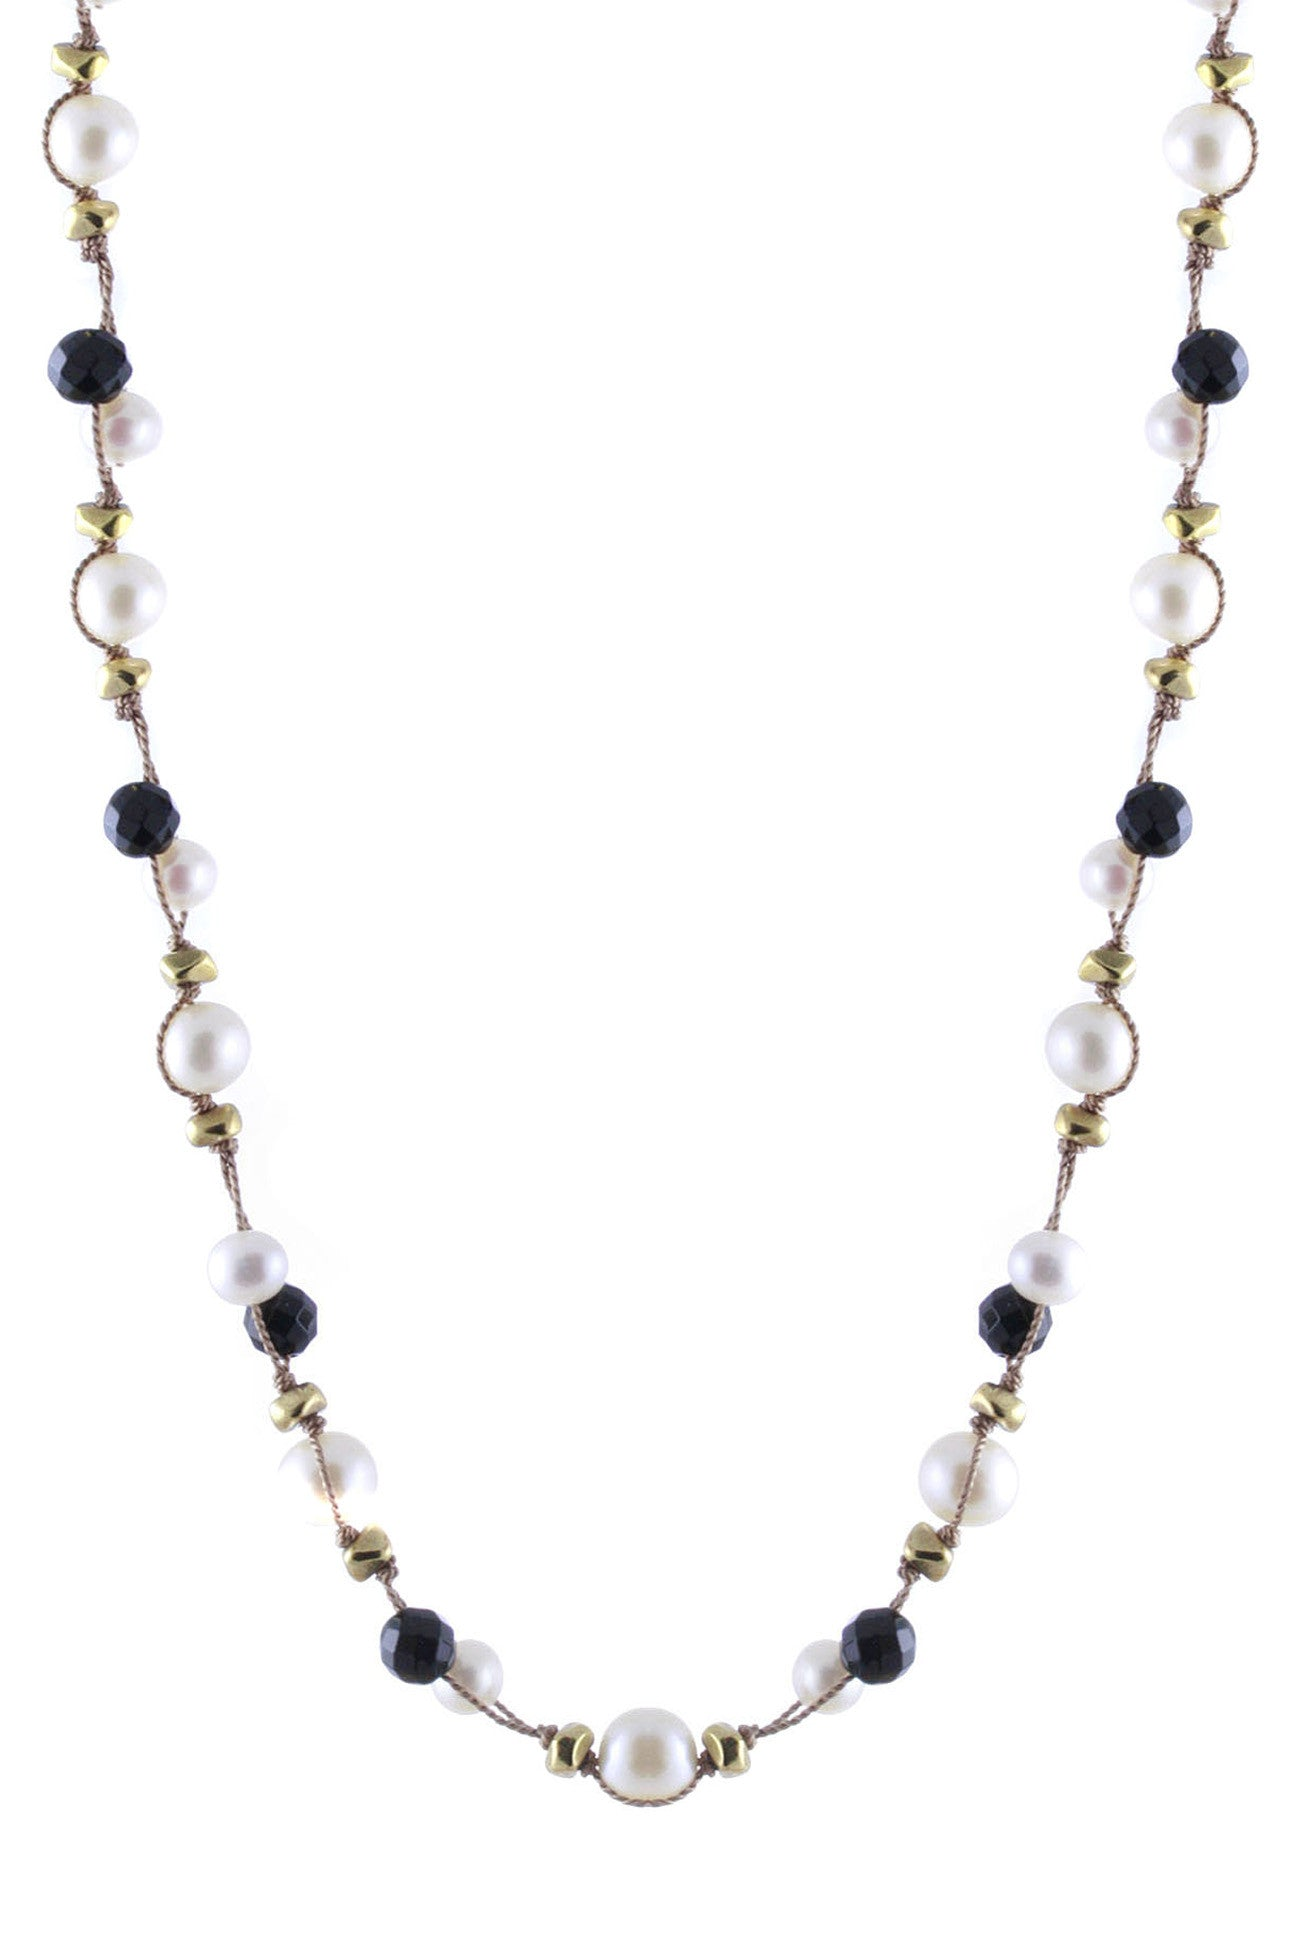 box the gold detail menta handmade necklace in product black with onyx